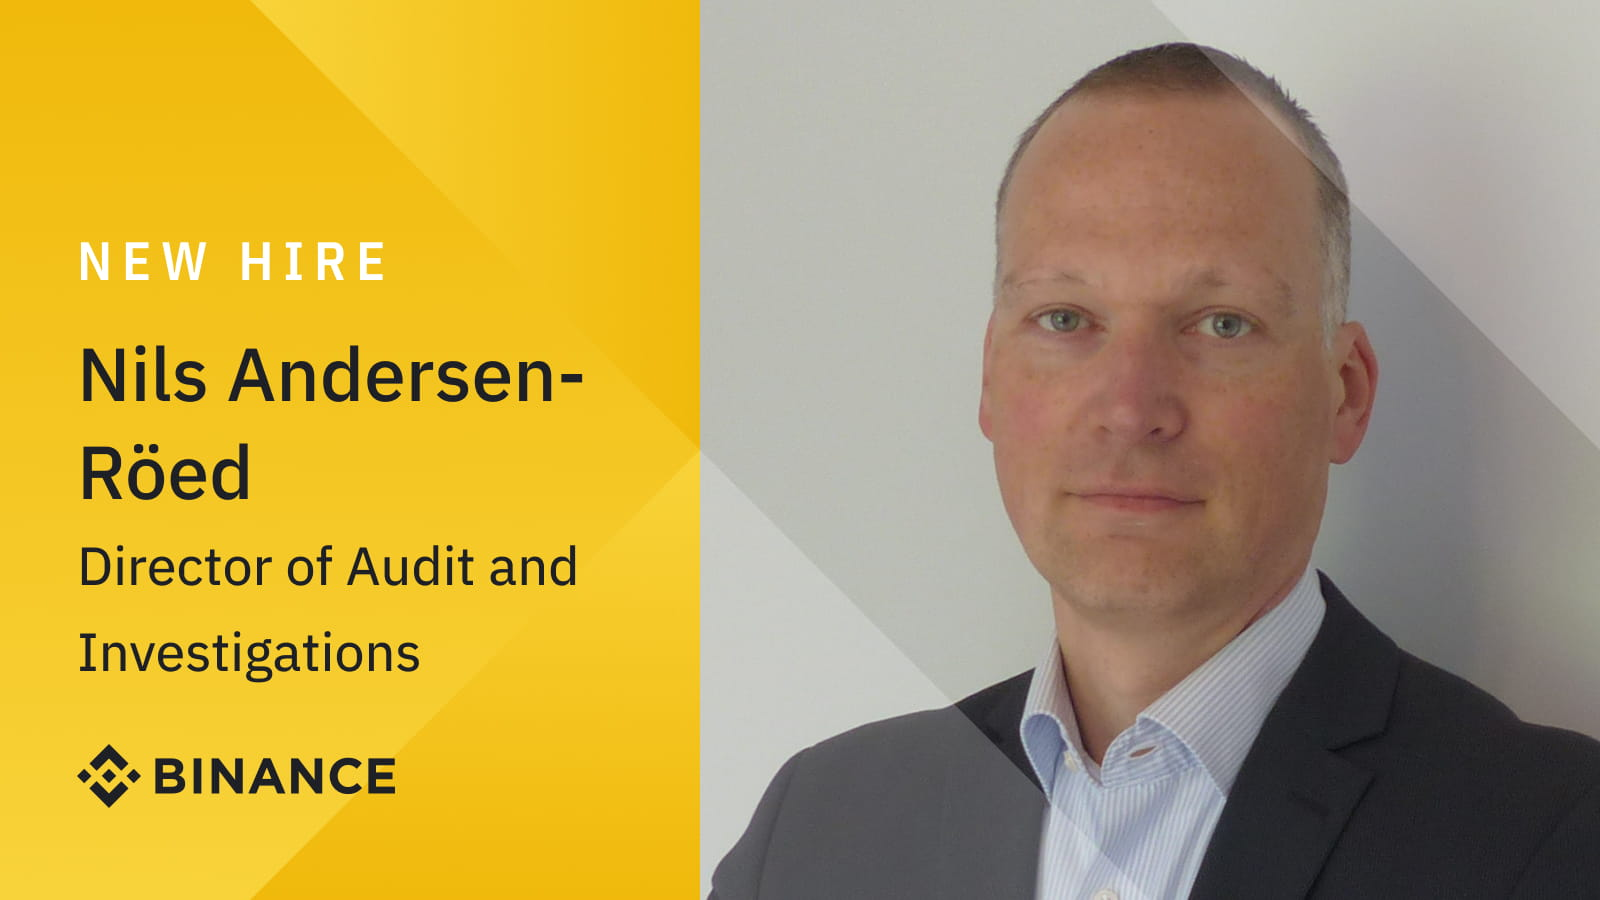 Nils Andersen-Röed joins Binance from Europol to further strengthen investigations and audit team   Binance Blogon October 8, 2021 at 6:39 am